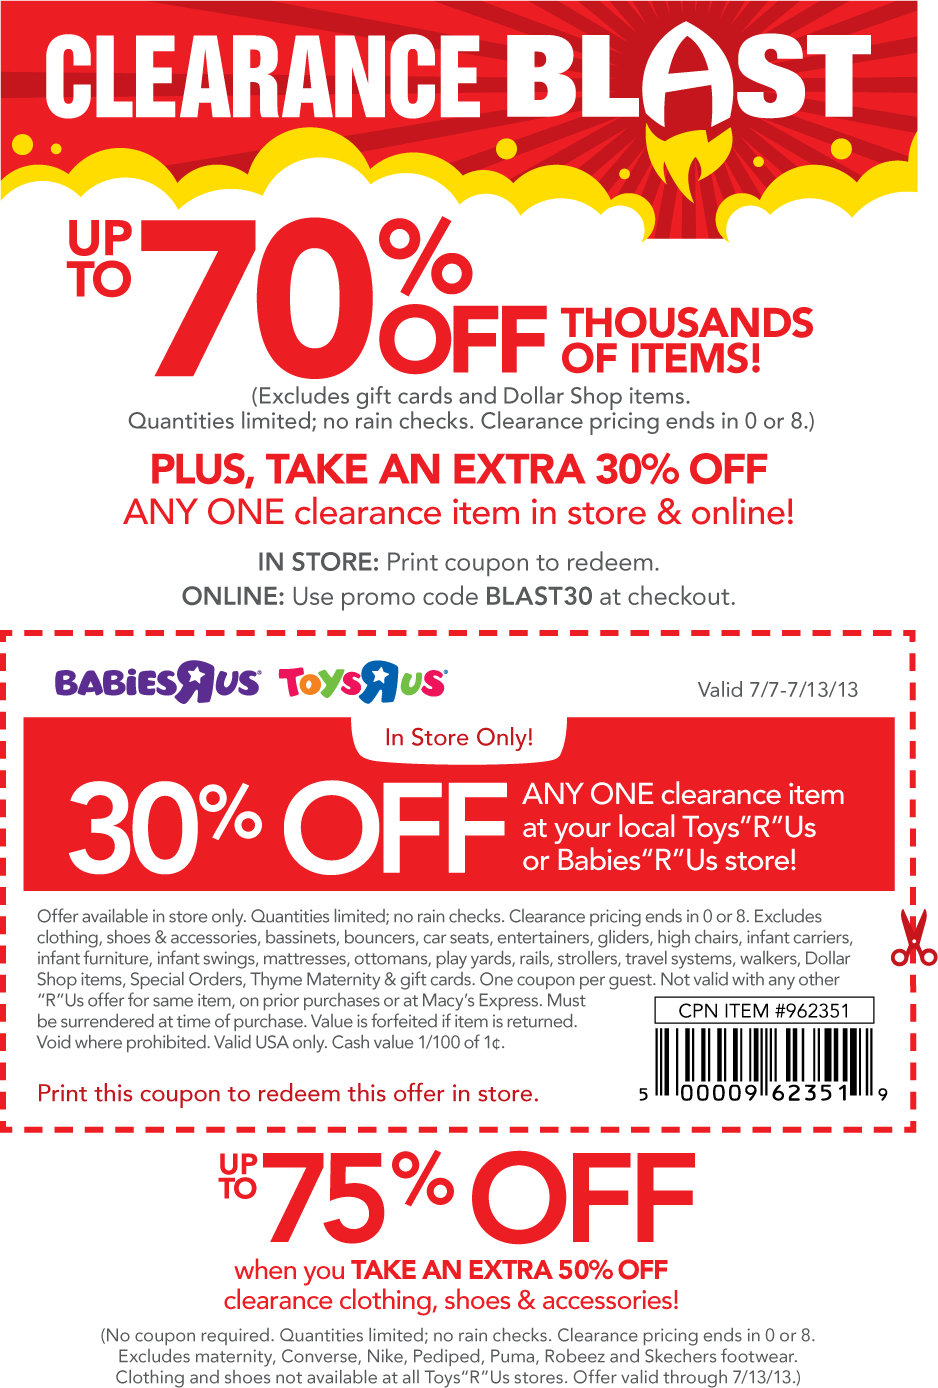 Baby R Us Printable Coupon : printable, coupon, Pinned, Extra, Single, Clearance, Babies, Online, Promo, BLAST30, Coupon, The…, Apps,, Print, Coupons,, Coupons